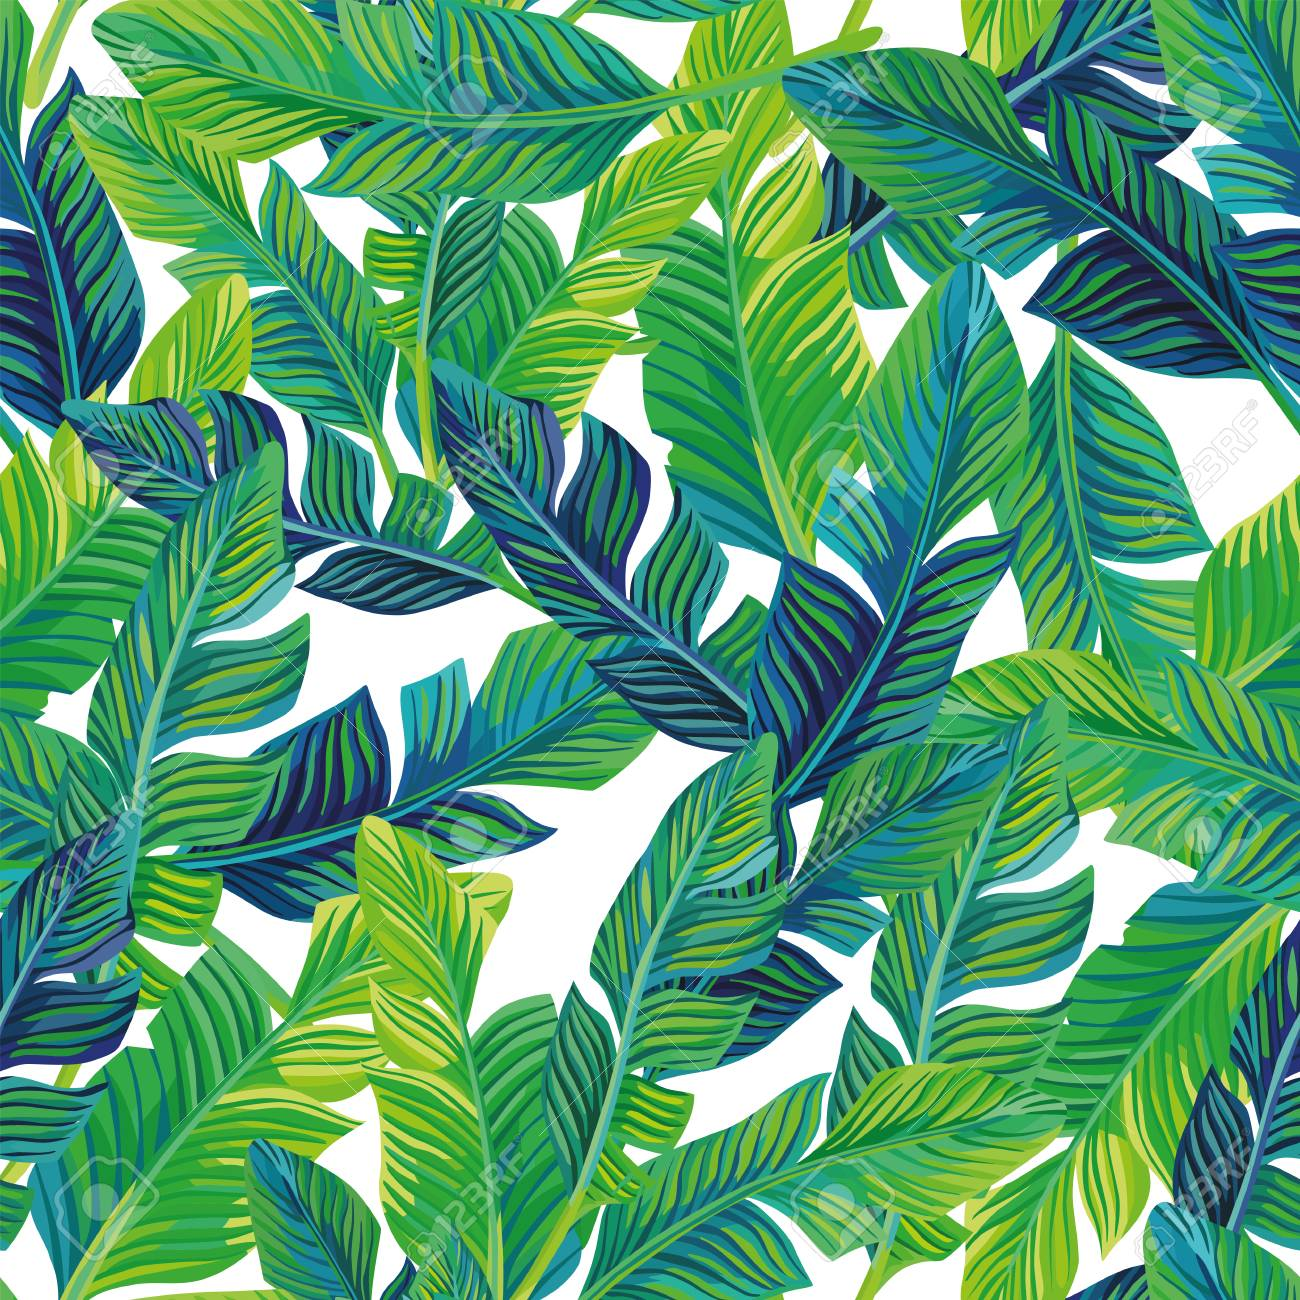 Tropical Palm Leaves Seamless Pattern Vector Background Exotic Royalty Free Cliparts Vectors And Stock Illustration Image 89127555 About 3% of these are 100% rayon fabric, 1% are 100% polyester fabric, and 0% are knitted fabric. tropical palm leaves seamless pattern vector background exotic